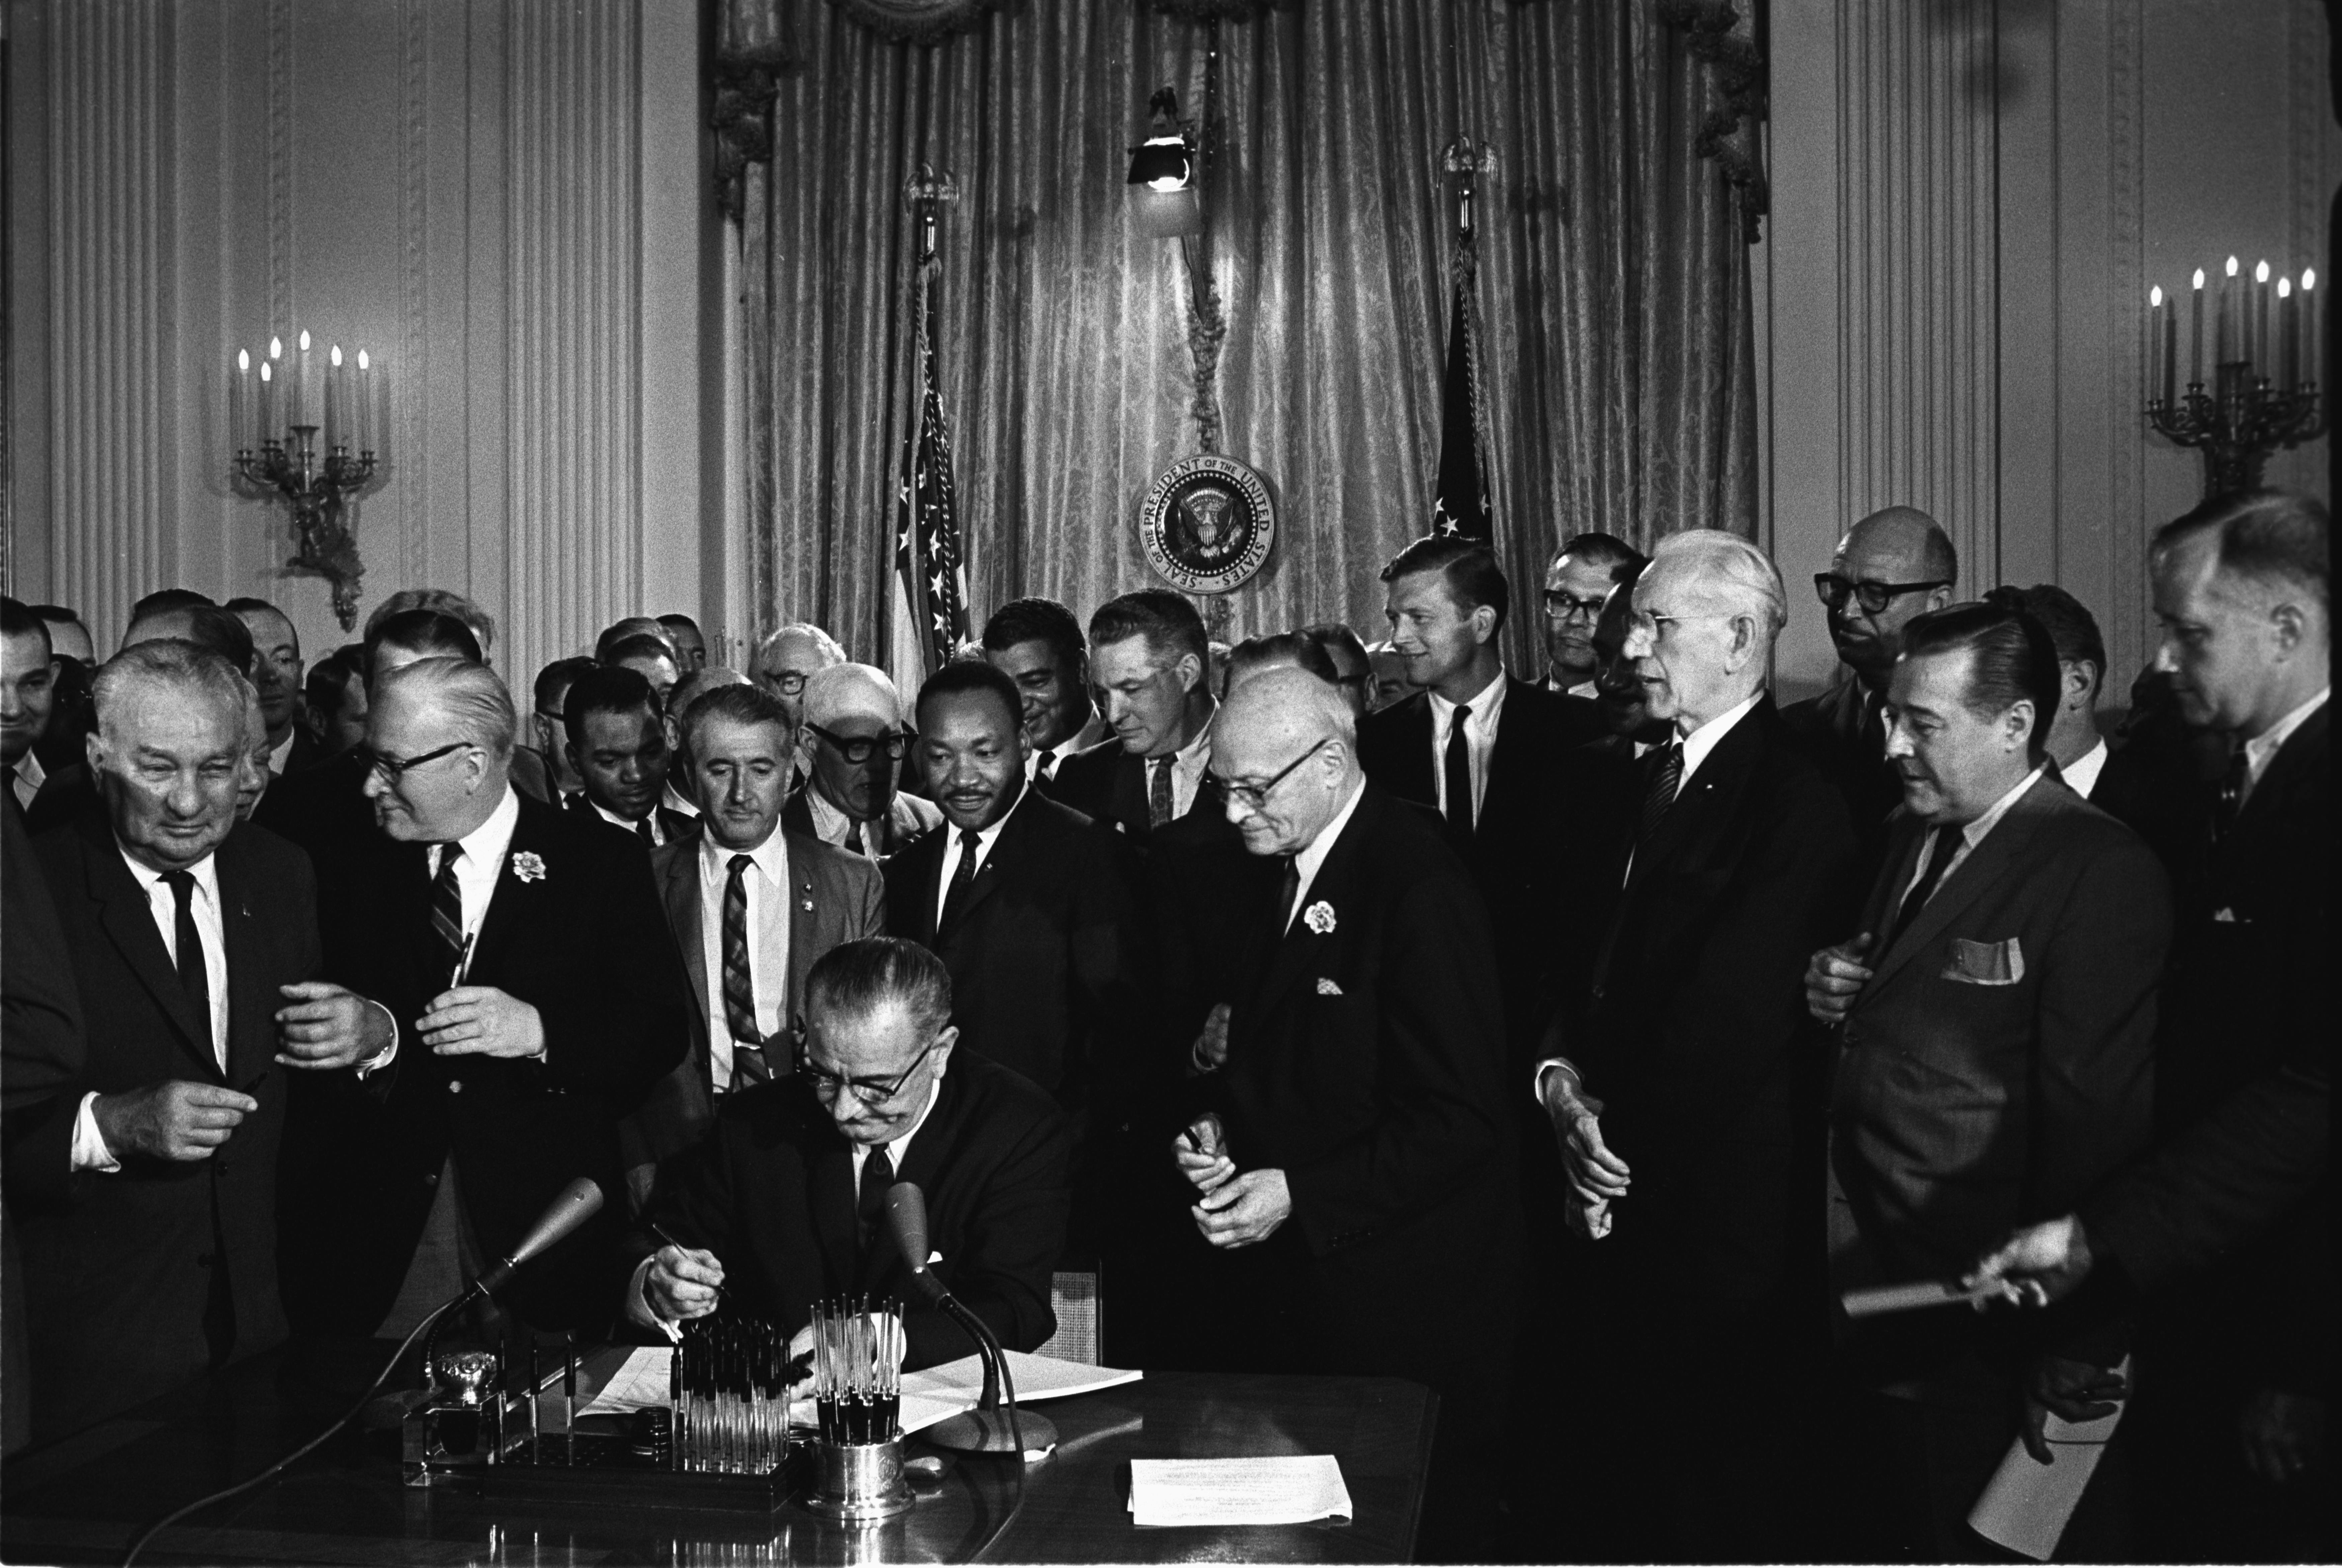 President Johnson signs the Civil Rights Act of 1964. Among the guests behind him is Martin Luther King.